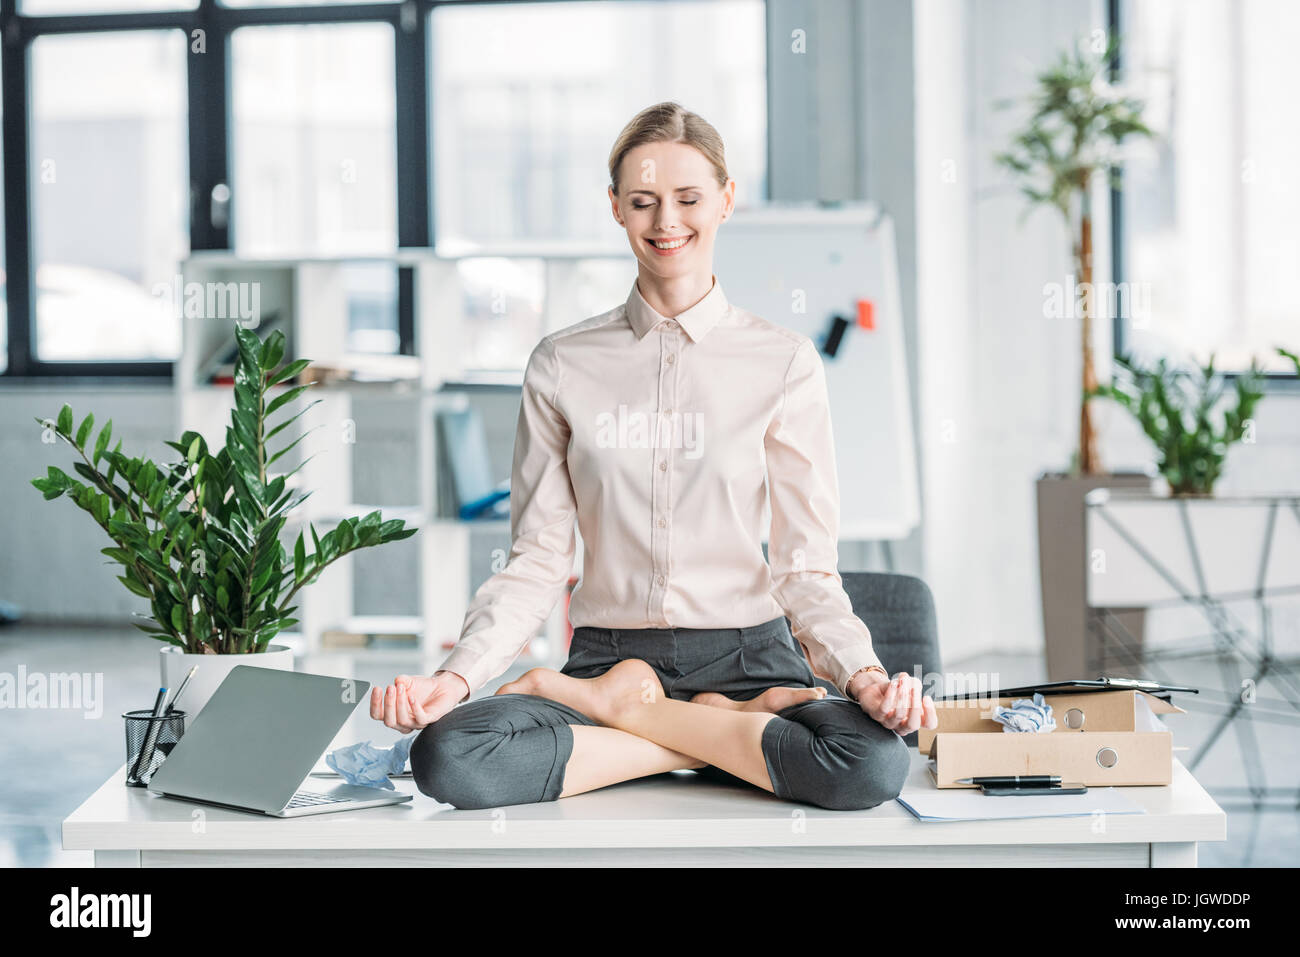 happy businesswoman meditating in lotus position on messy table in office - Stock Image